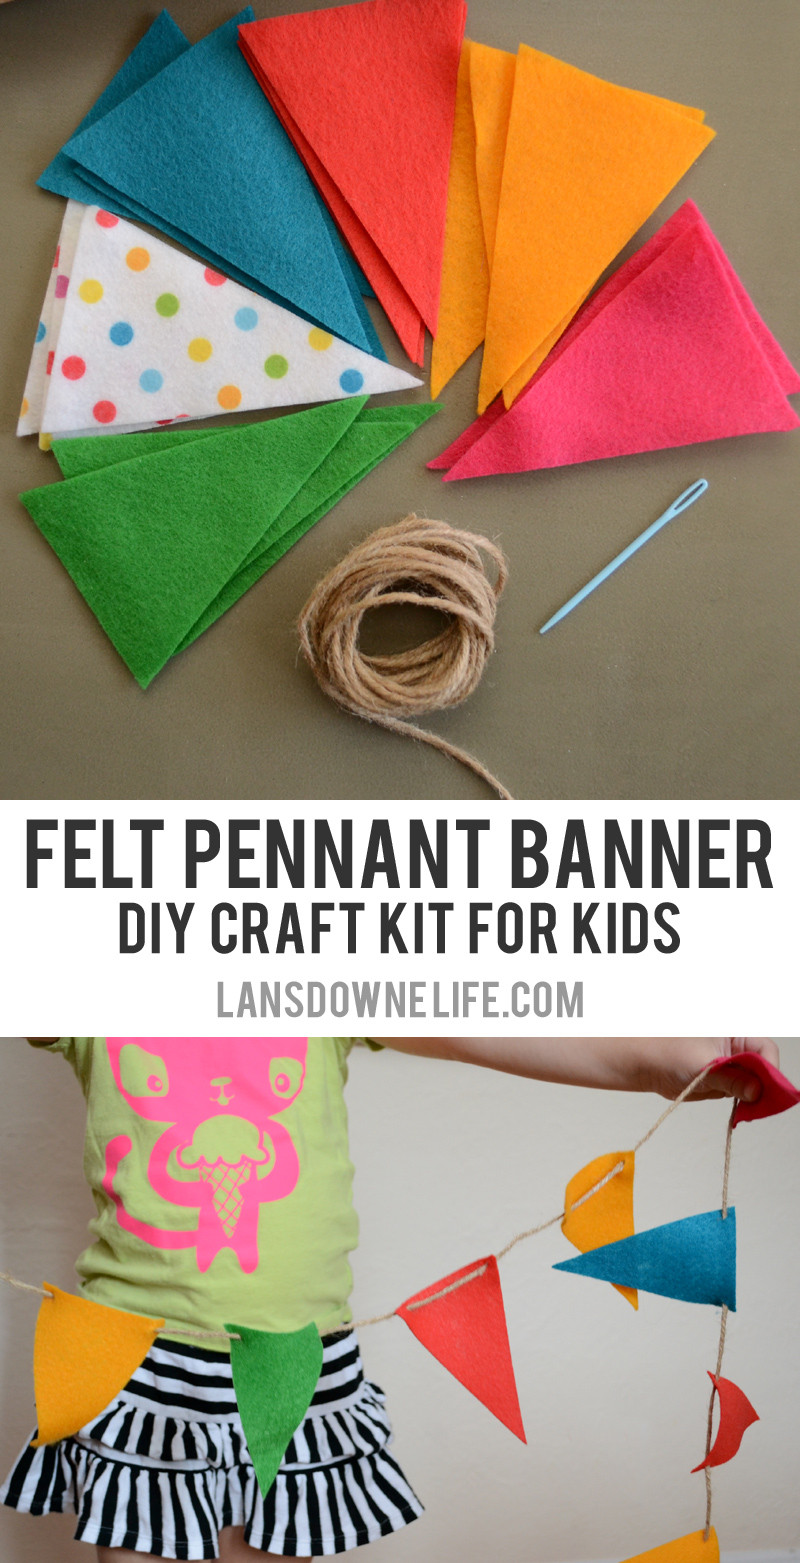 Best ideas about DIY Craft Kits For Kids . Save or Pin Homemade Christmas Gifts for Kids Now.